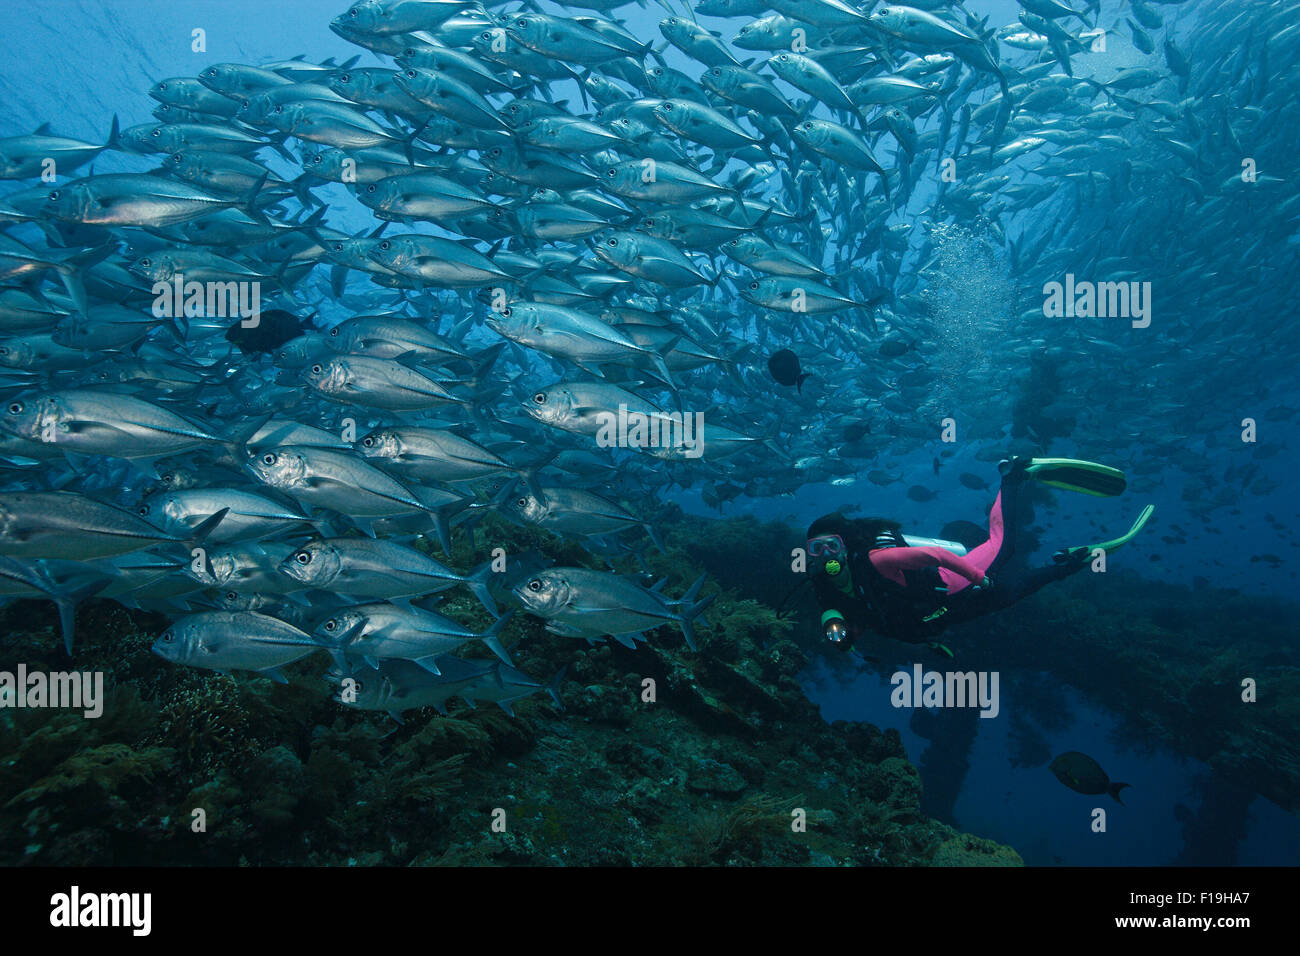 px1058-D. scuba diver (model released) and huge school of Bigeye Jacks (Caranx sexfasciatus) over the Liberty Shipwreck. - Stock Image